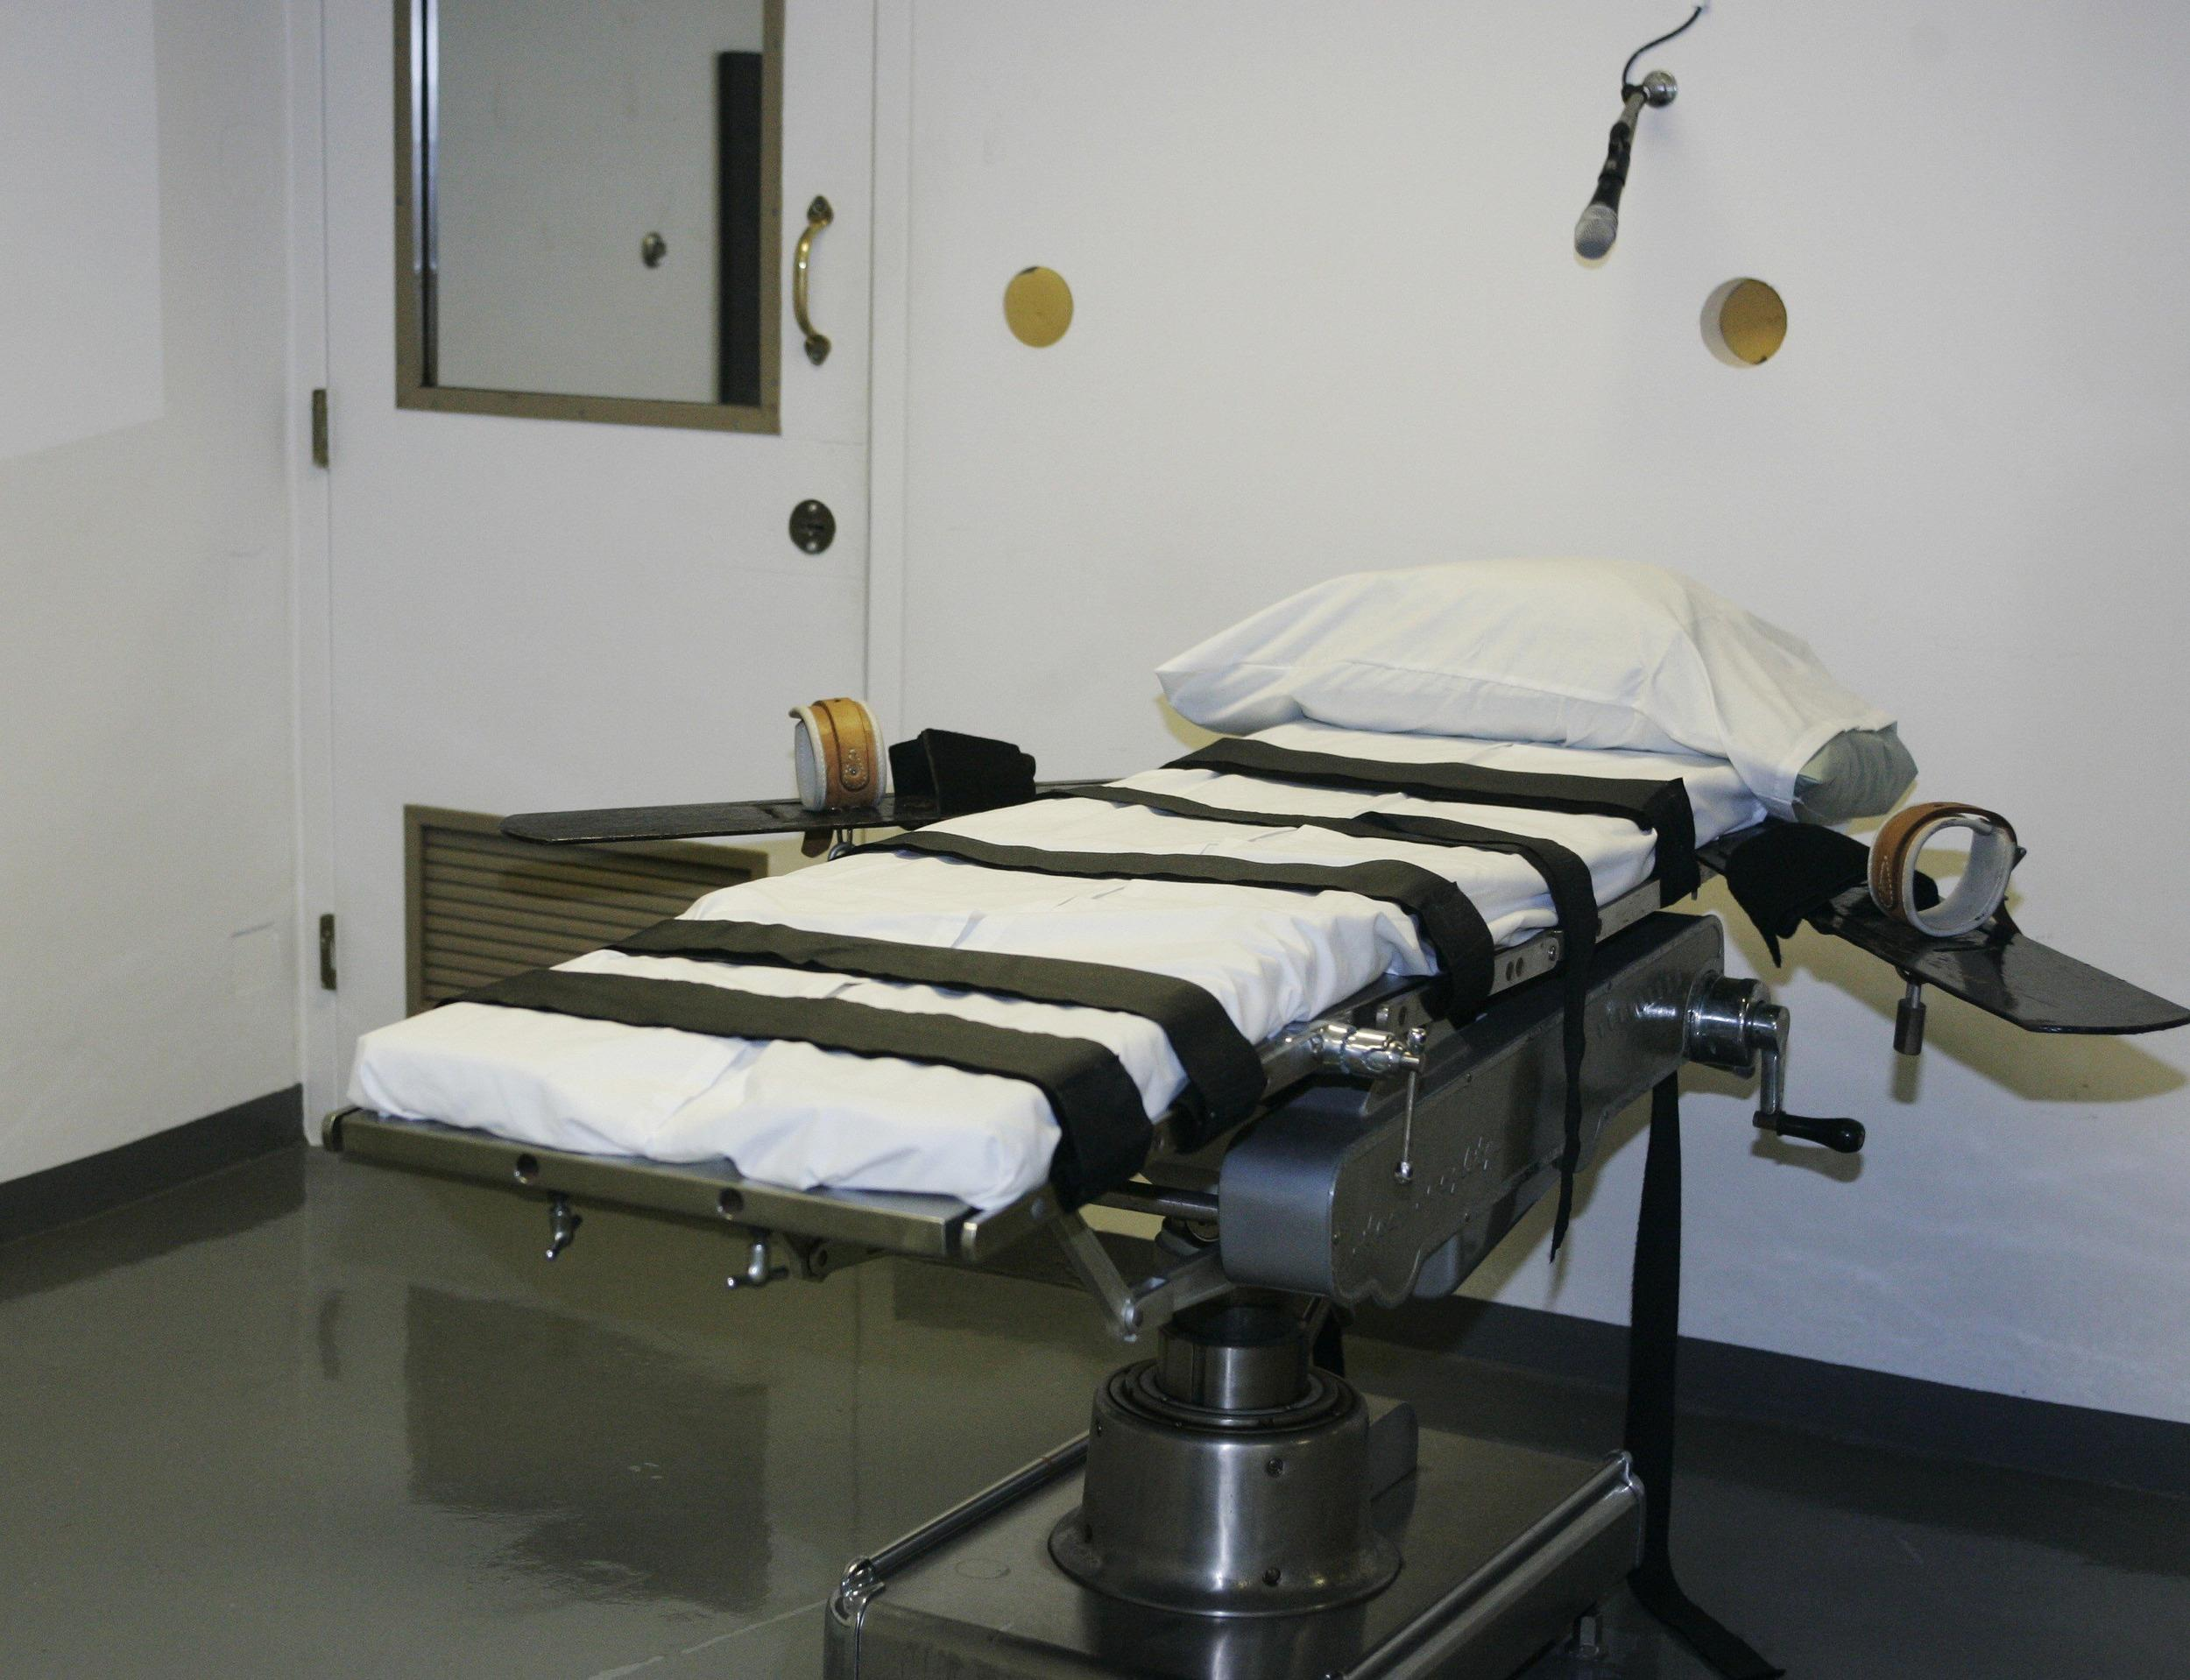 Image:  The gurney in the execution chamber at the Oklahoma State Penitentiary is pictured in McAlester, Okla.